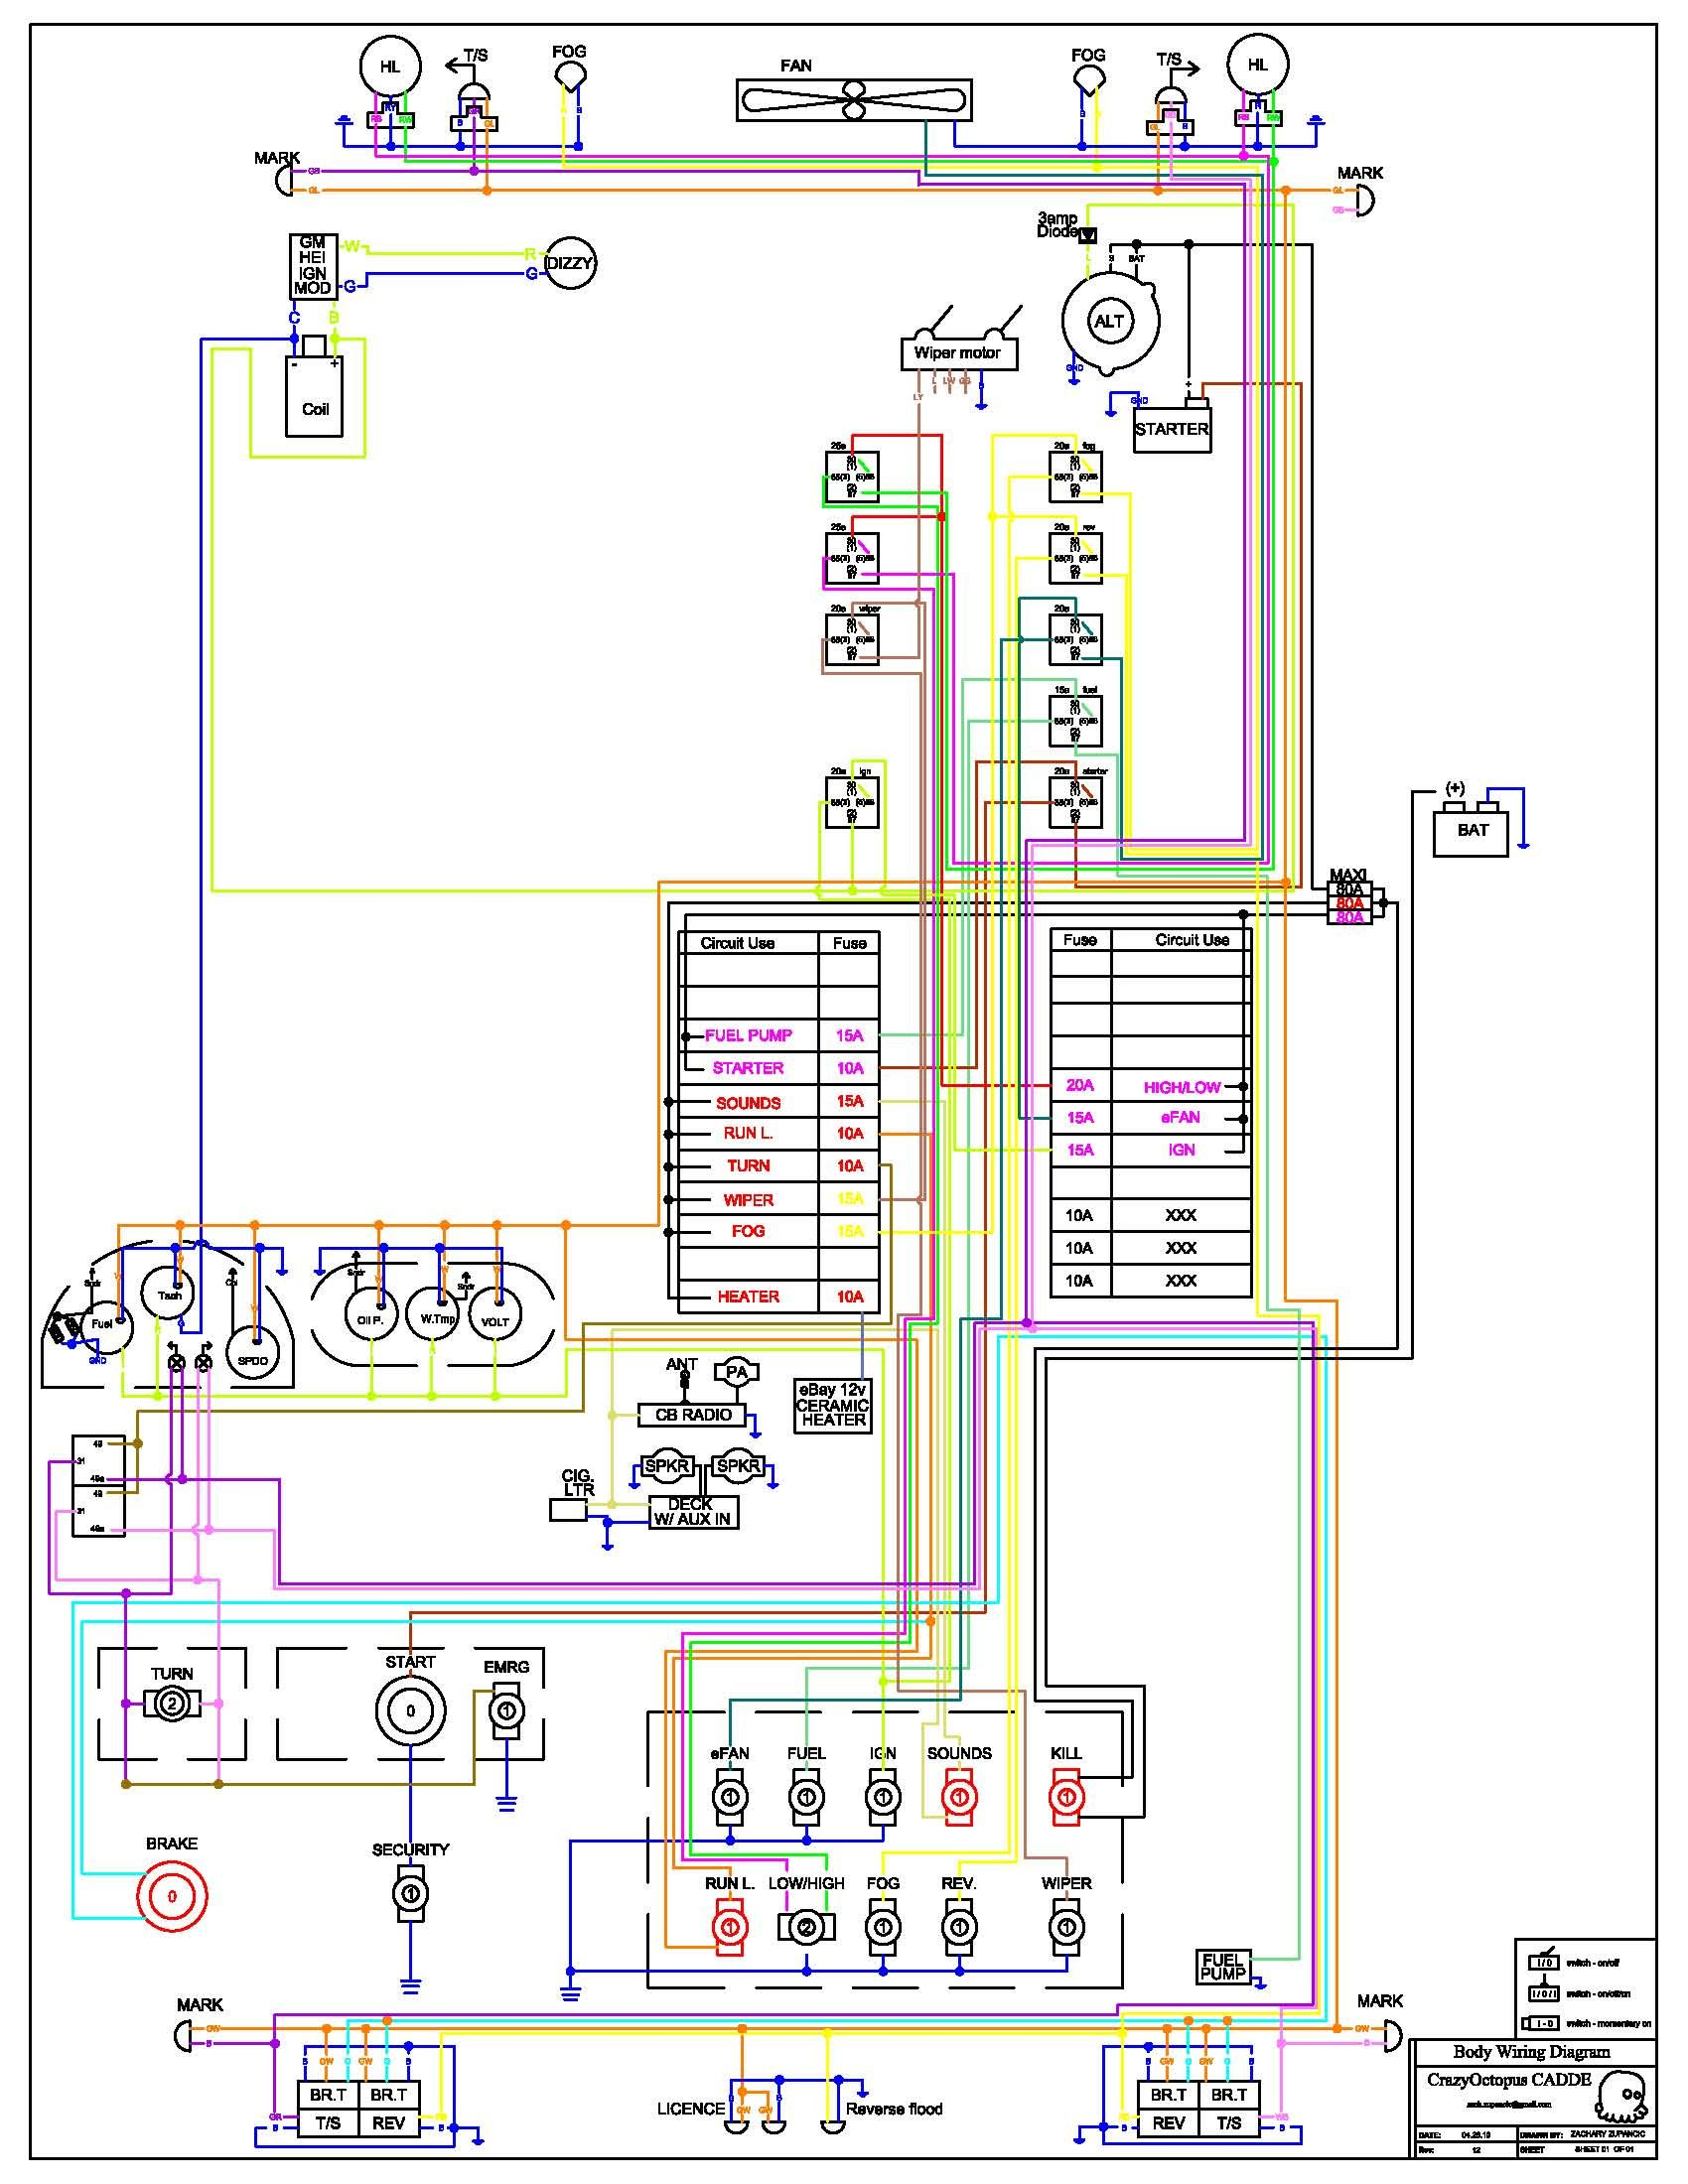 mefi 3 wiring diagram mefi image wiring diagram boat wire diagram 1971 winner boat automotive wiring diagram on mefi 3 wiring diagram